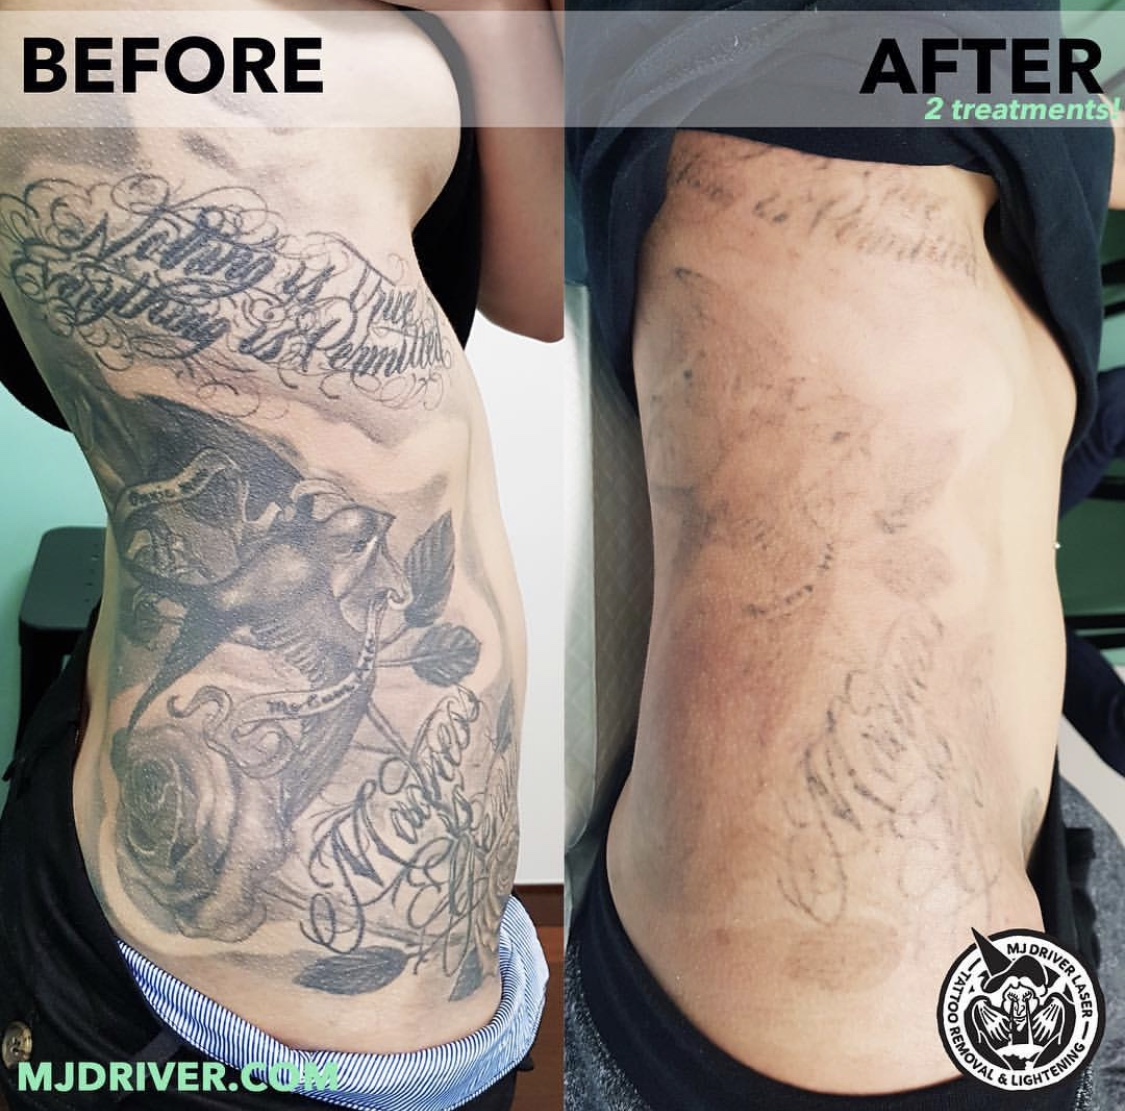 MJ Driver Before and After Laser Tattoo Removal